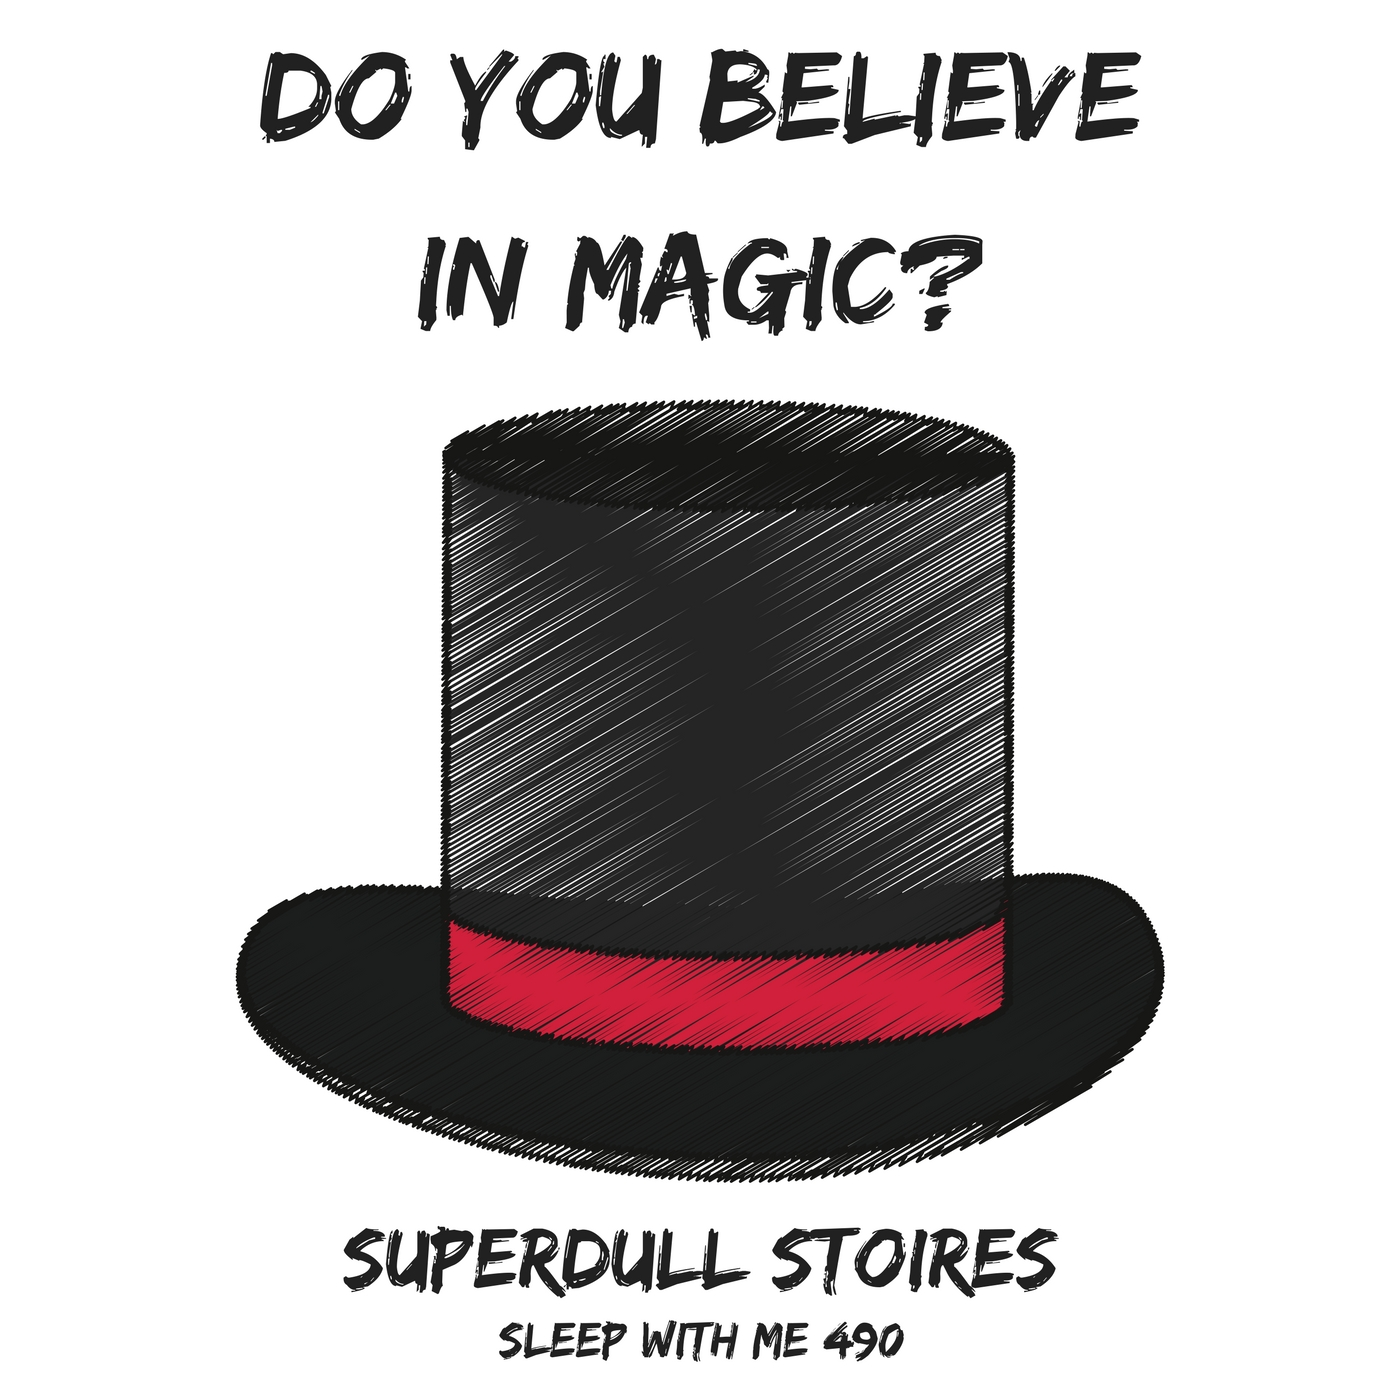 Do You Believe in Magic? | Superdull Stories | Sleep With Me #490